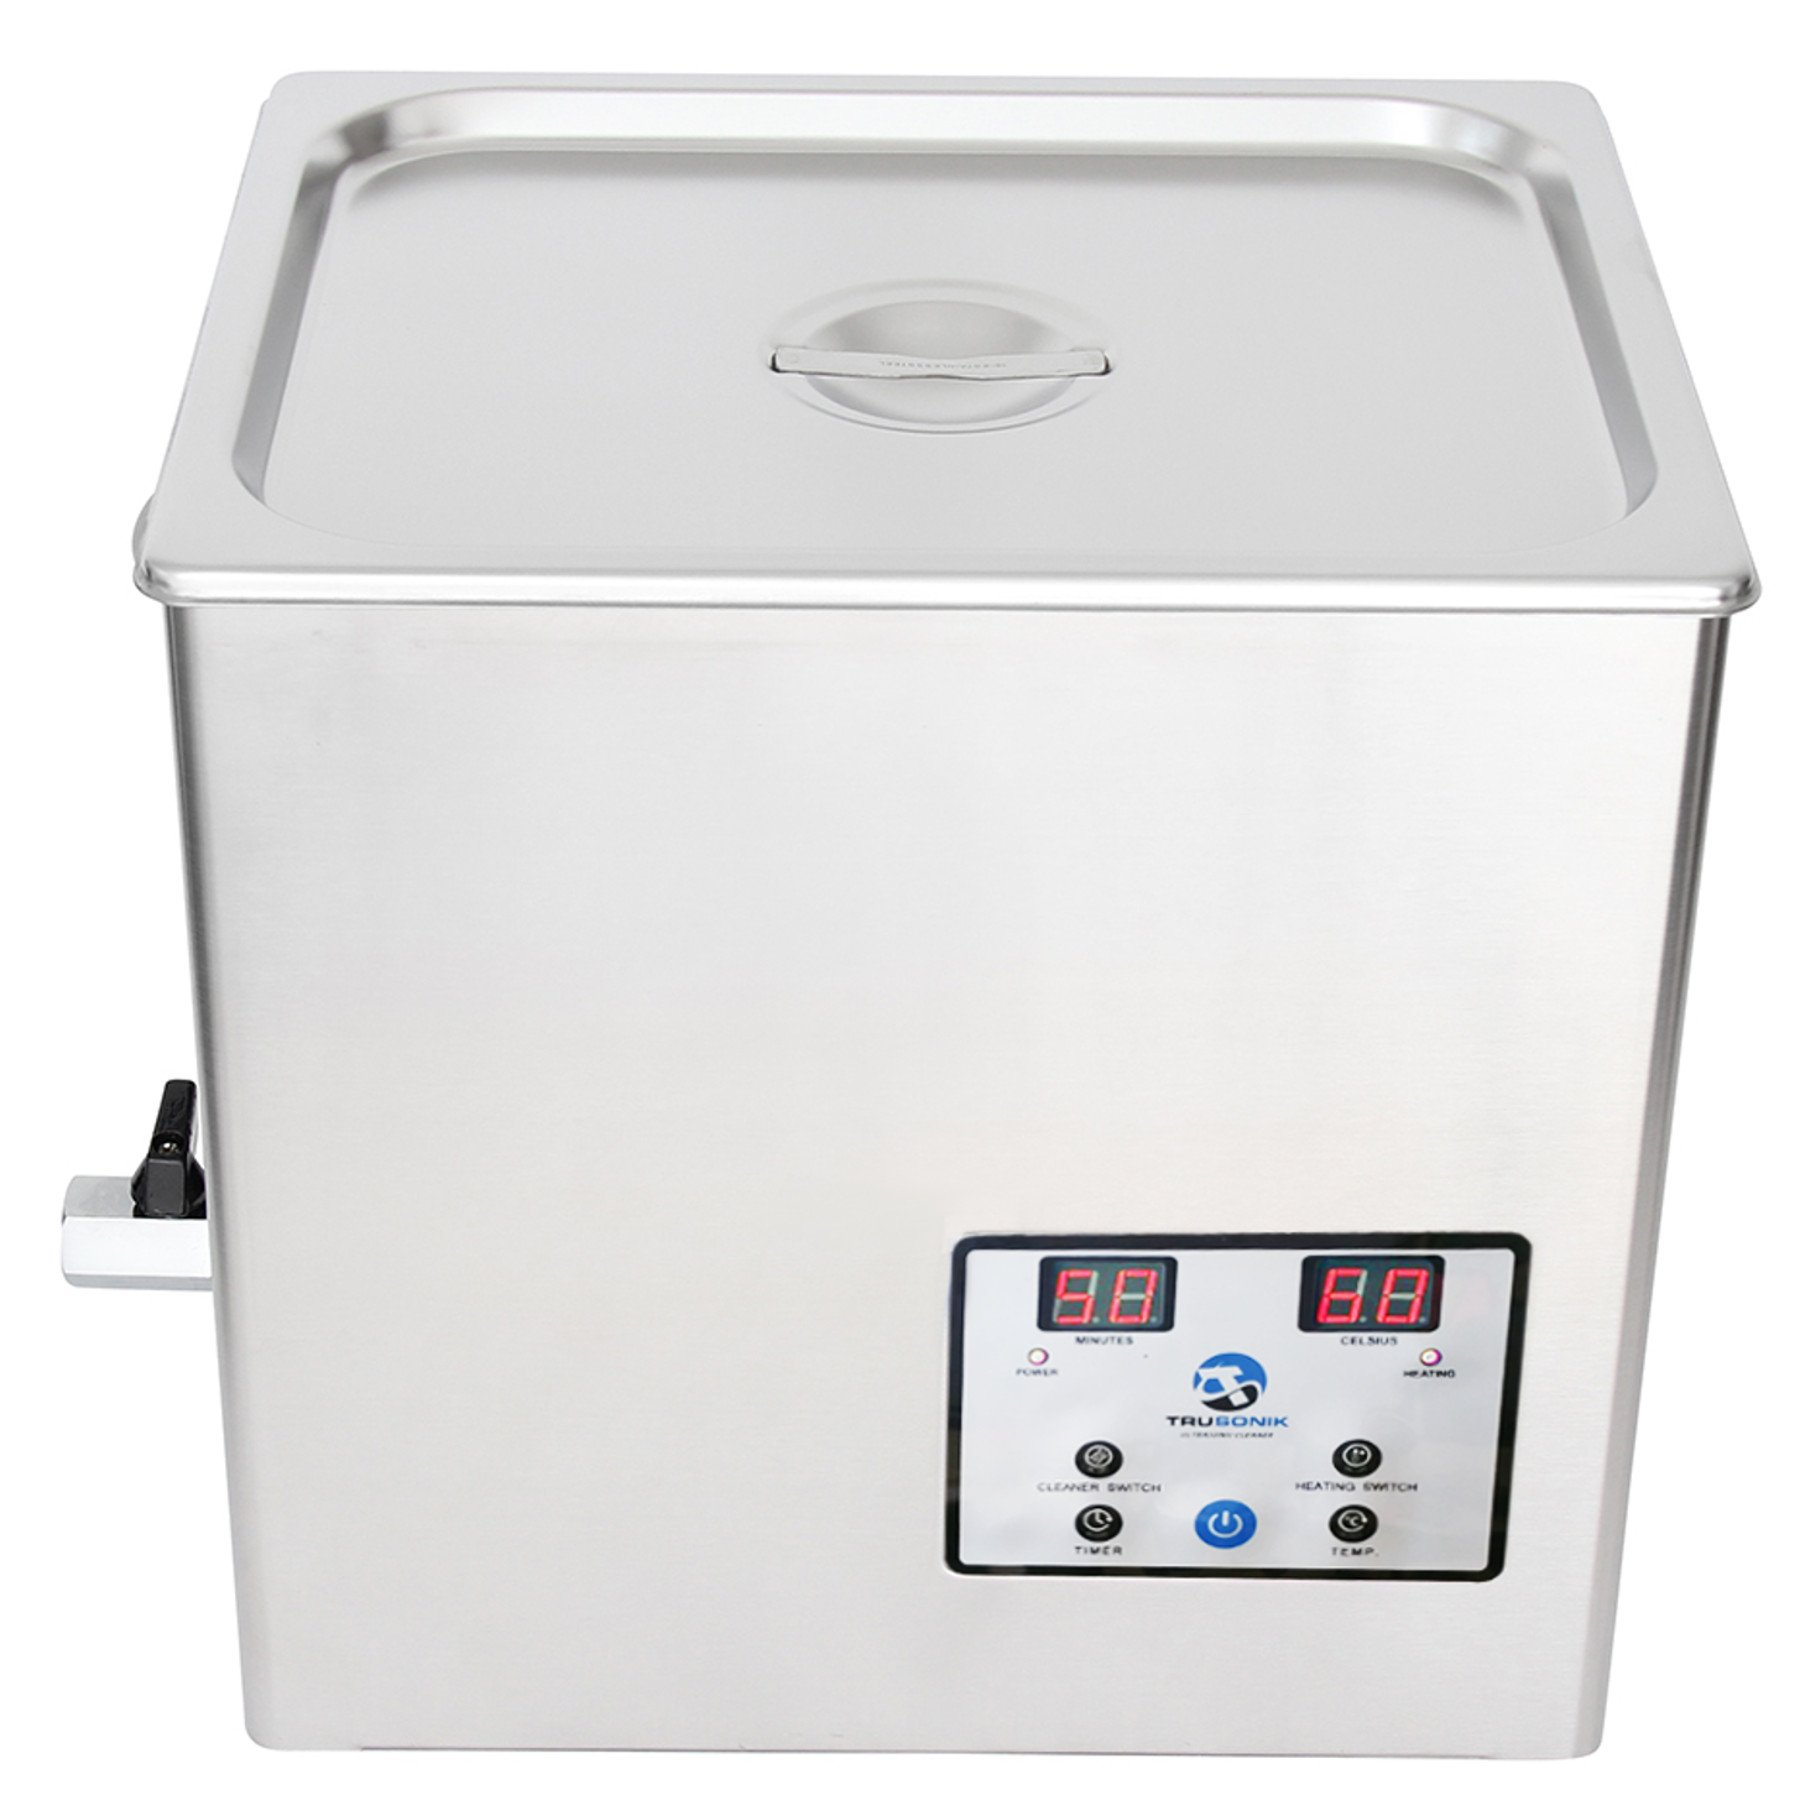 TruSonik 10L Digital Ultrasonic Cleaner With Heater | Industrial Stainless Steel Body, Tub, & Basket | Cleans Jewellery, Dental & Tattoo Equipment, Guns & Gun Parts, Car Parts & Carbs, & More